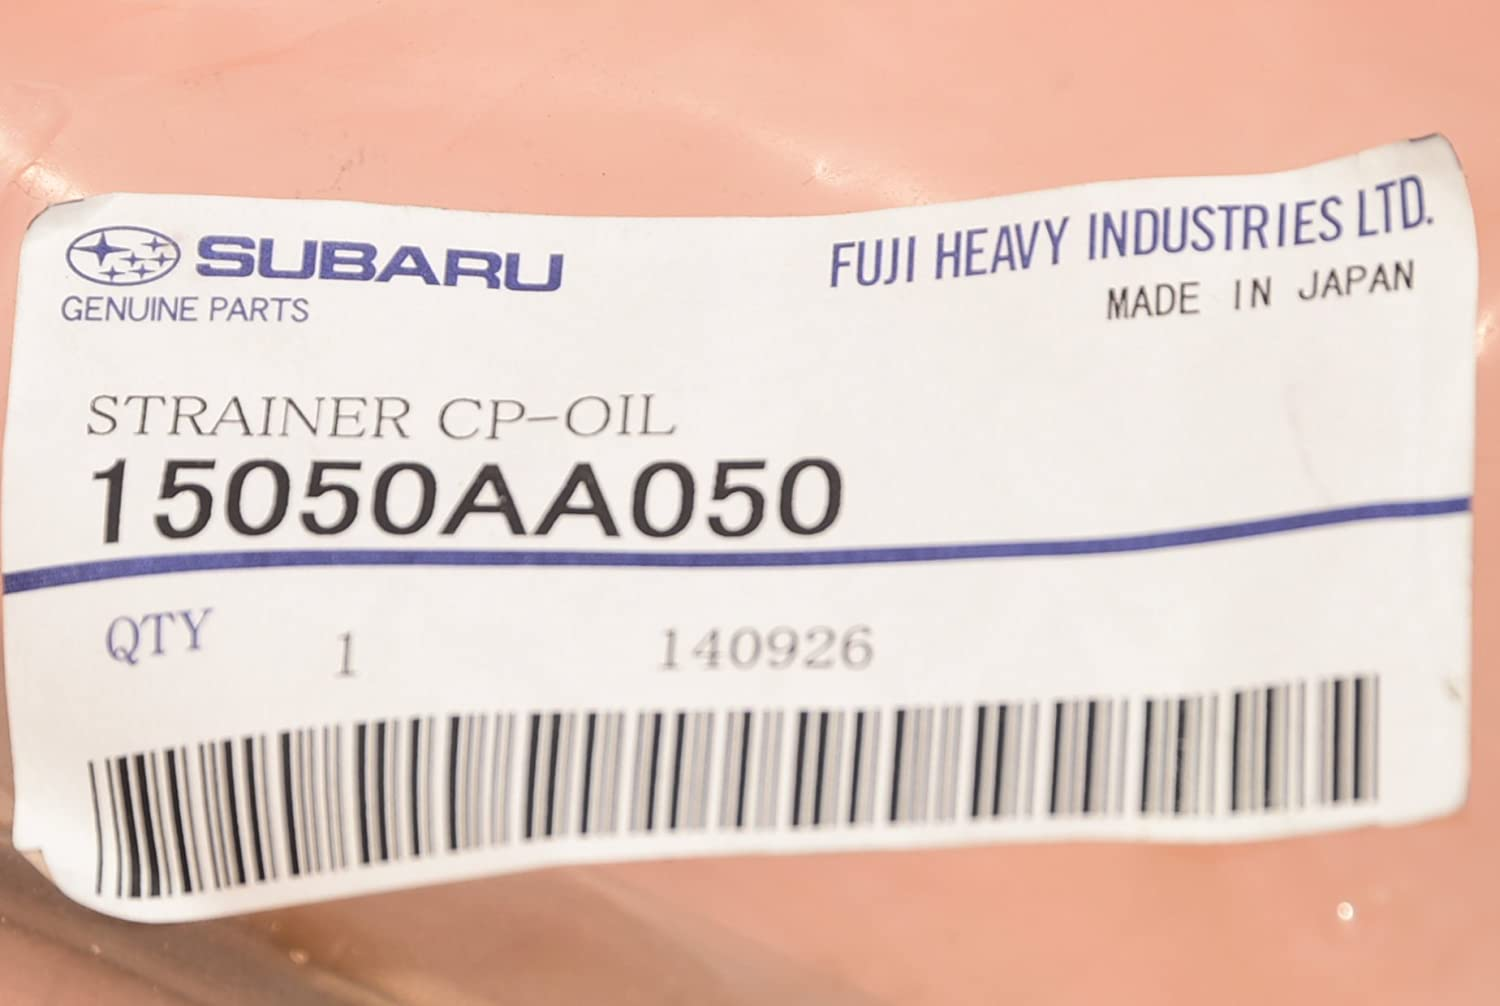 Subaru 15050AA050 Oil Pick-Up Tube